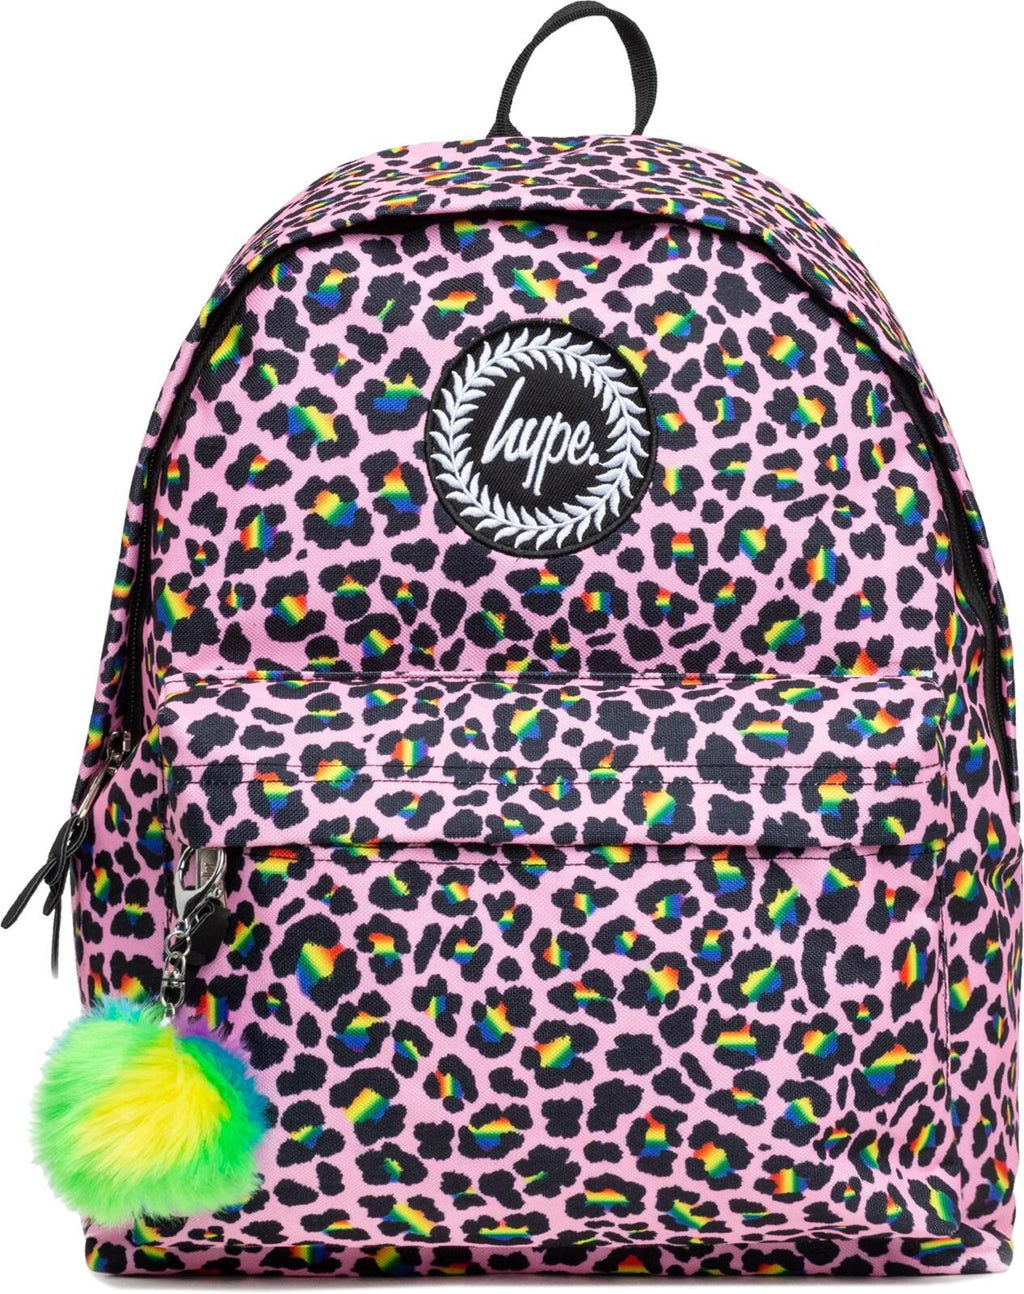 Hype Rainbow Leopard Pom Pom Backpack Bag Pink